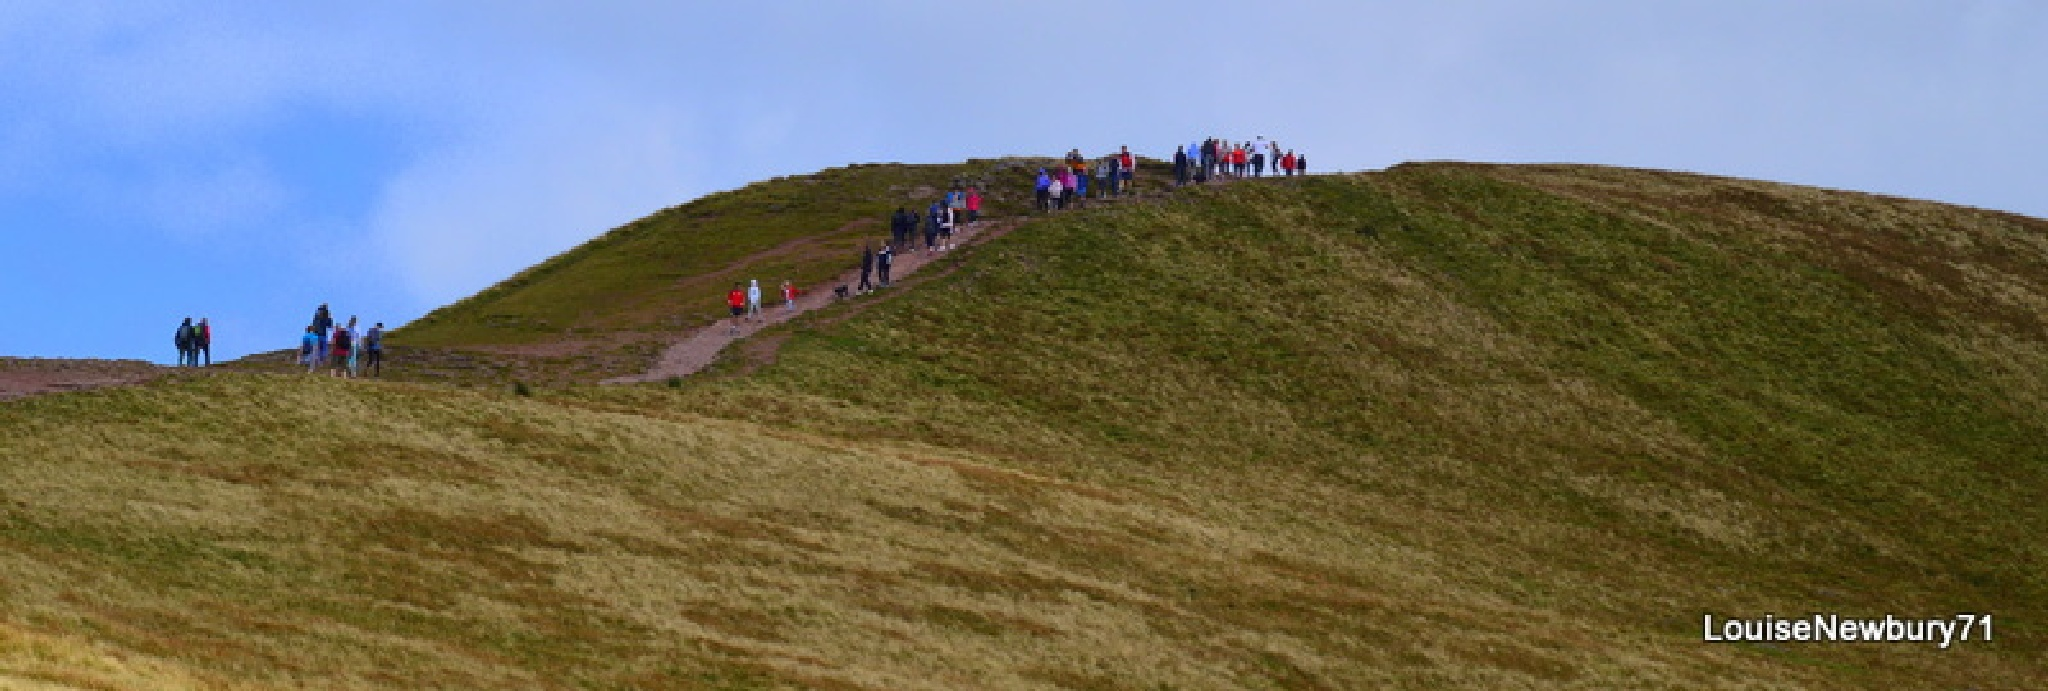 Walkers making their way to the peak by louise.newbury